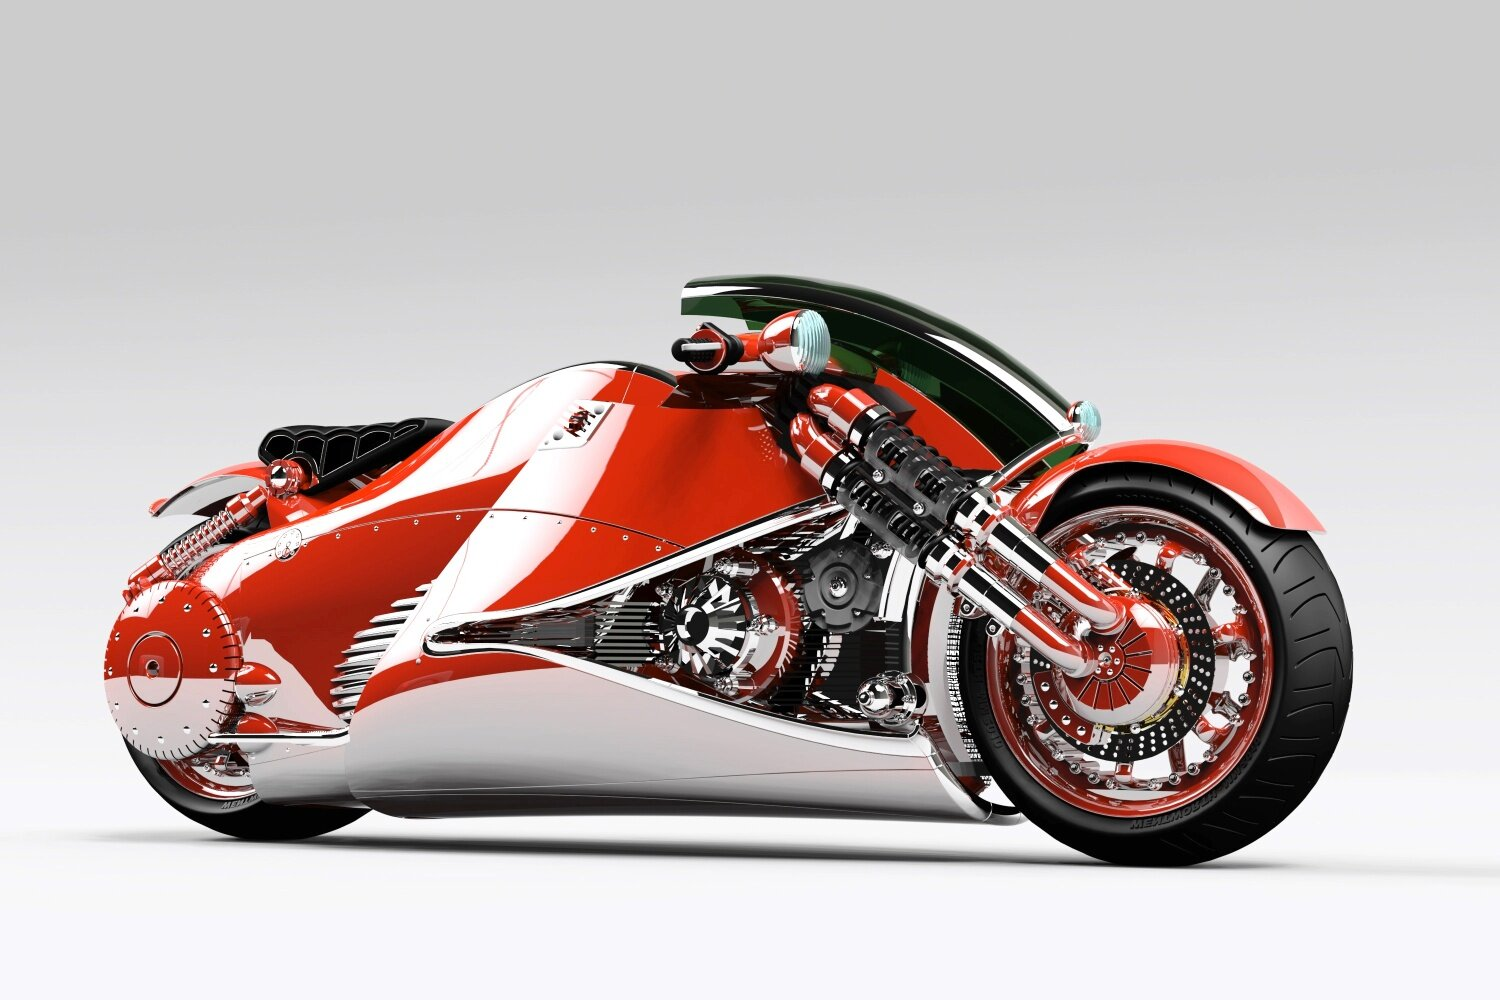 24 Coolest Motorcycles In The World | MostBeautifulThings